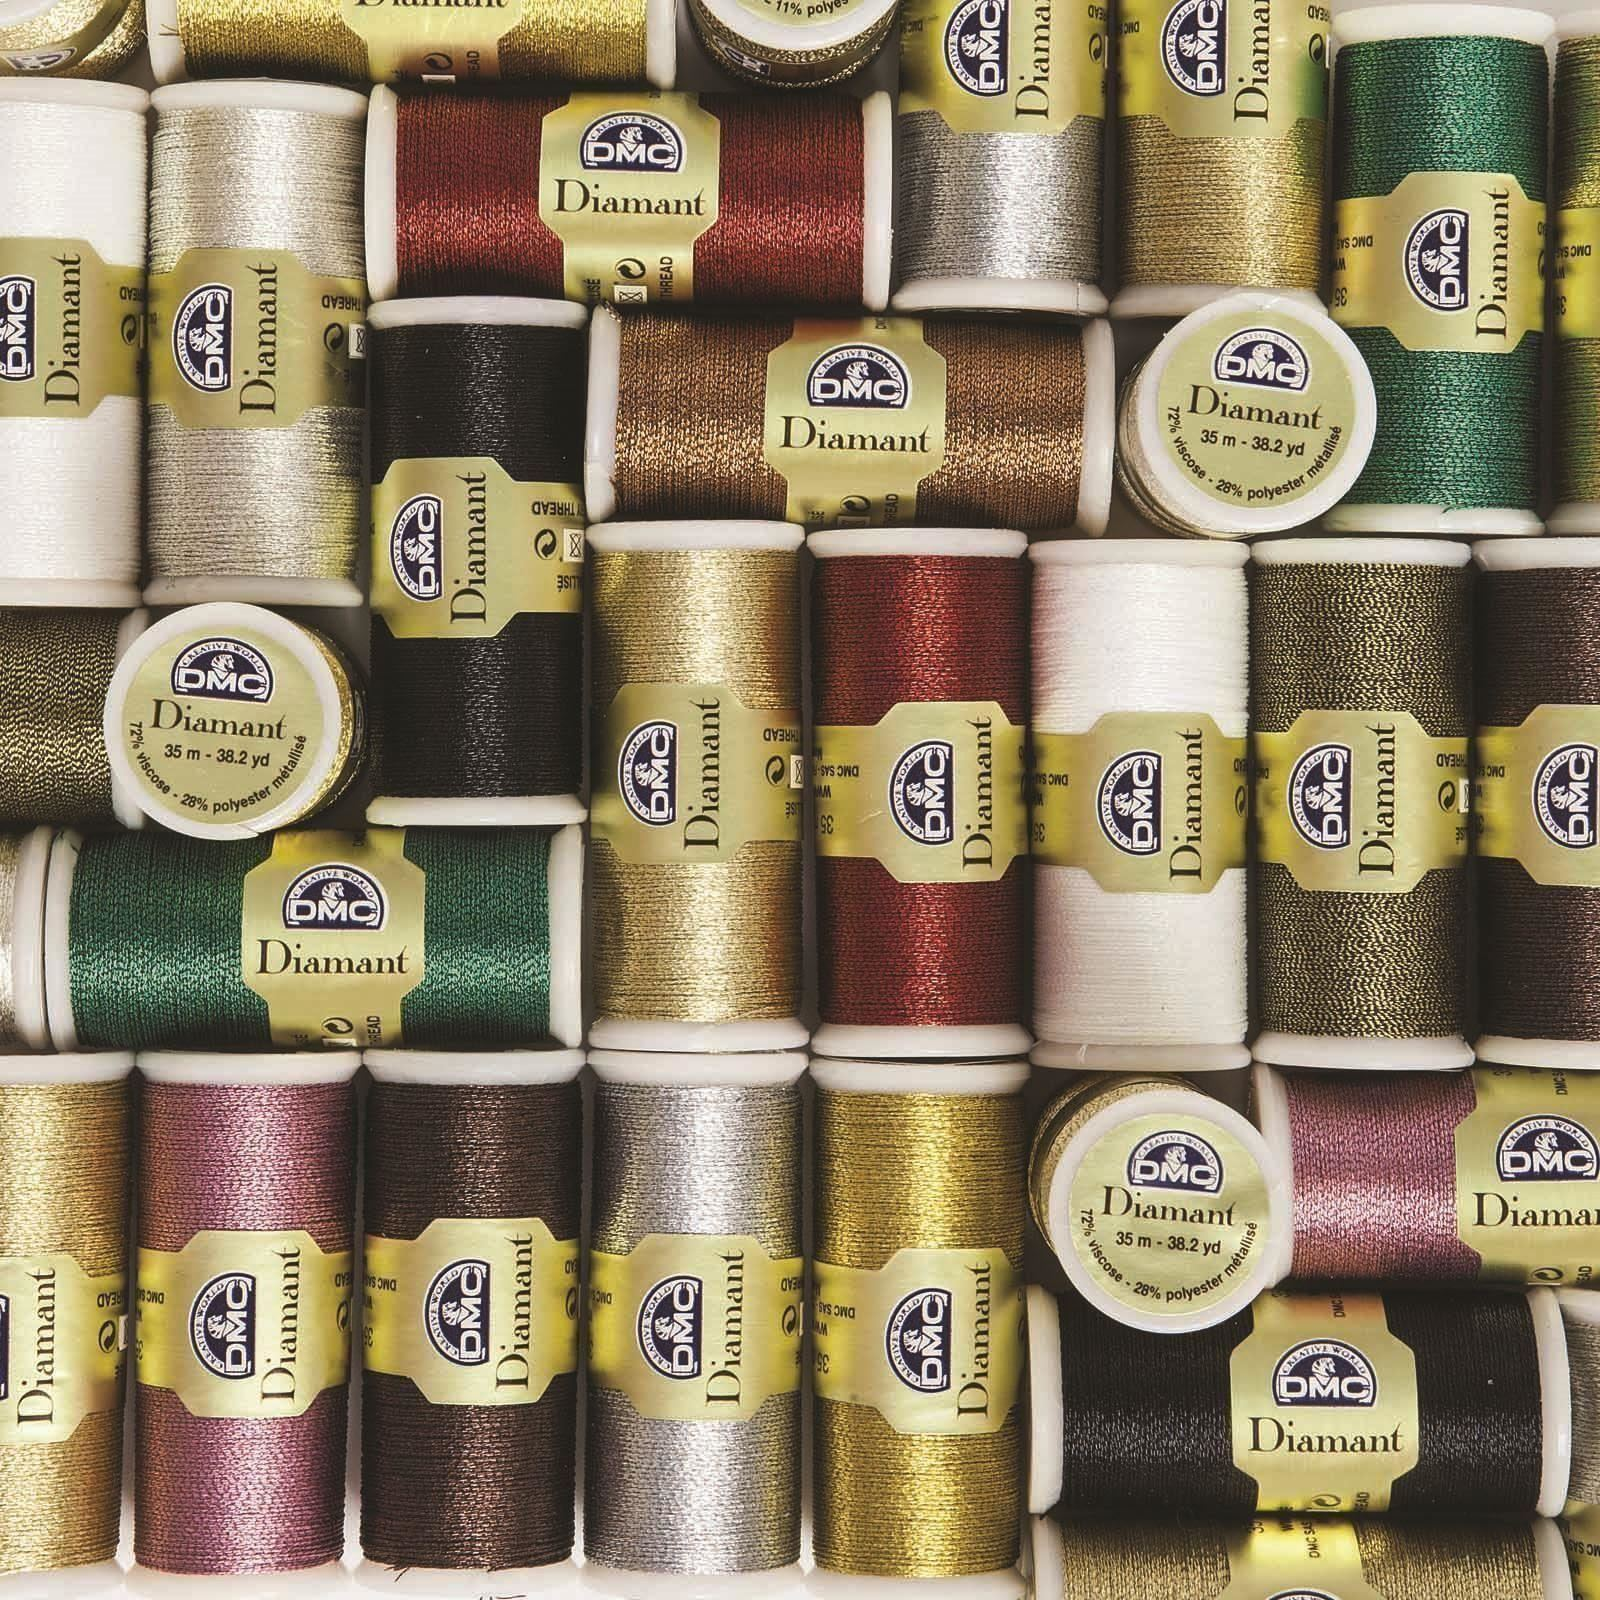 DMC-Diamant-Metallic-Embroidery-Thread-35m-Spool-Cross-Stitch thumbnail 13